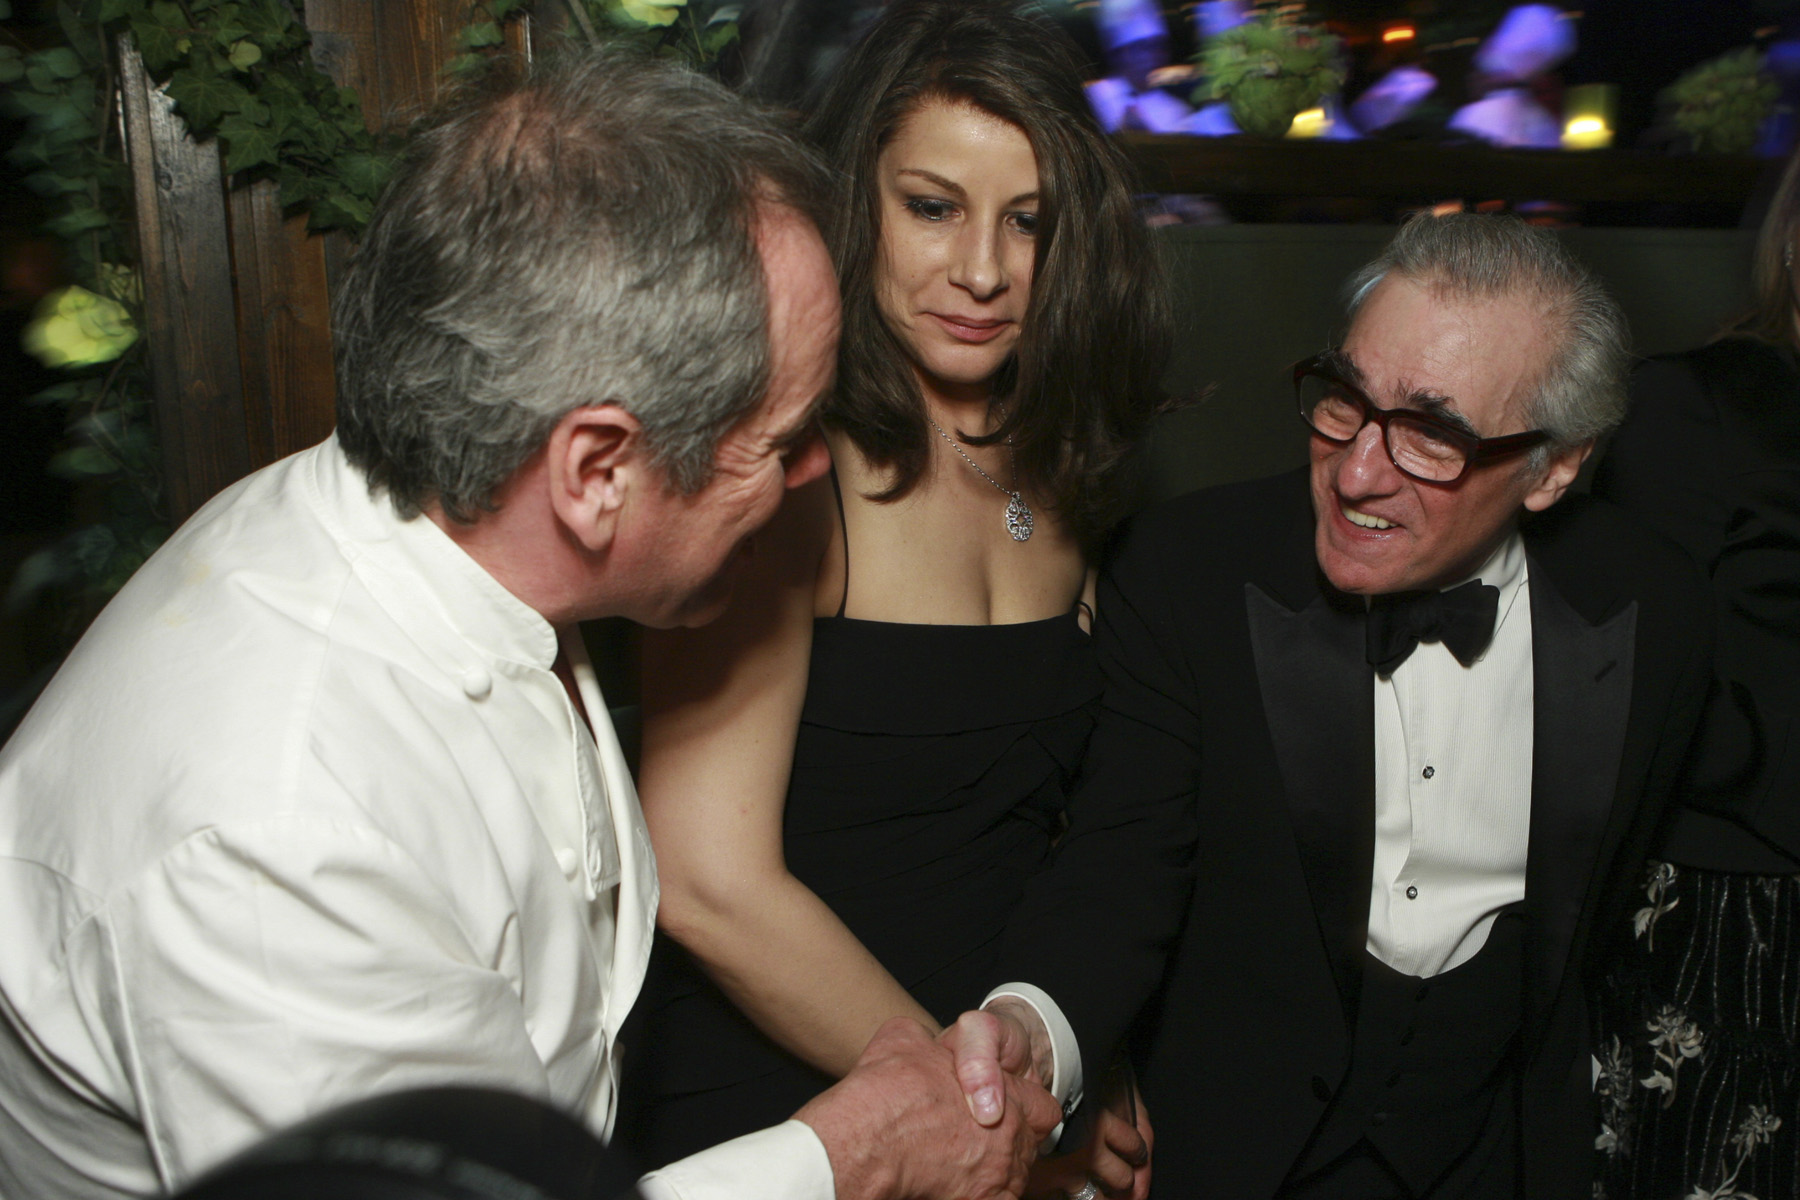 Scorsese and Wolfgang Puck